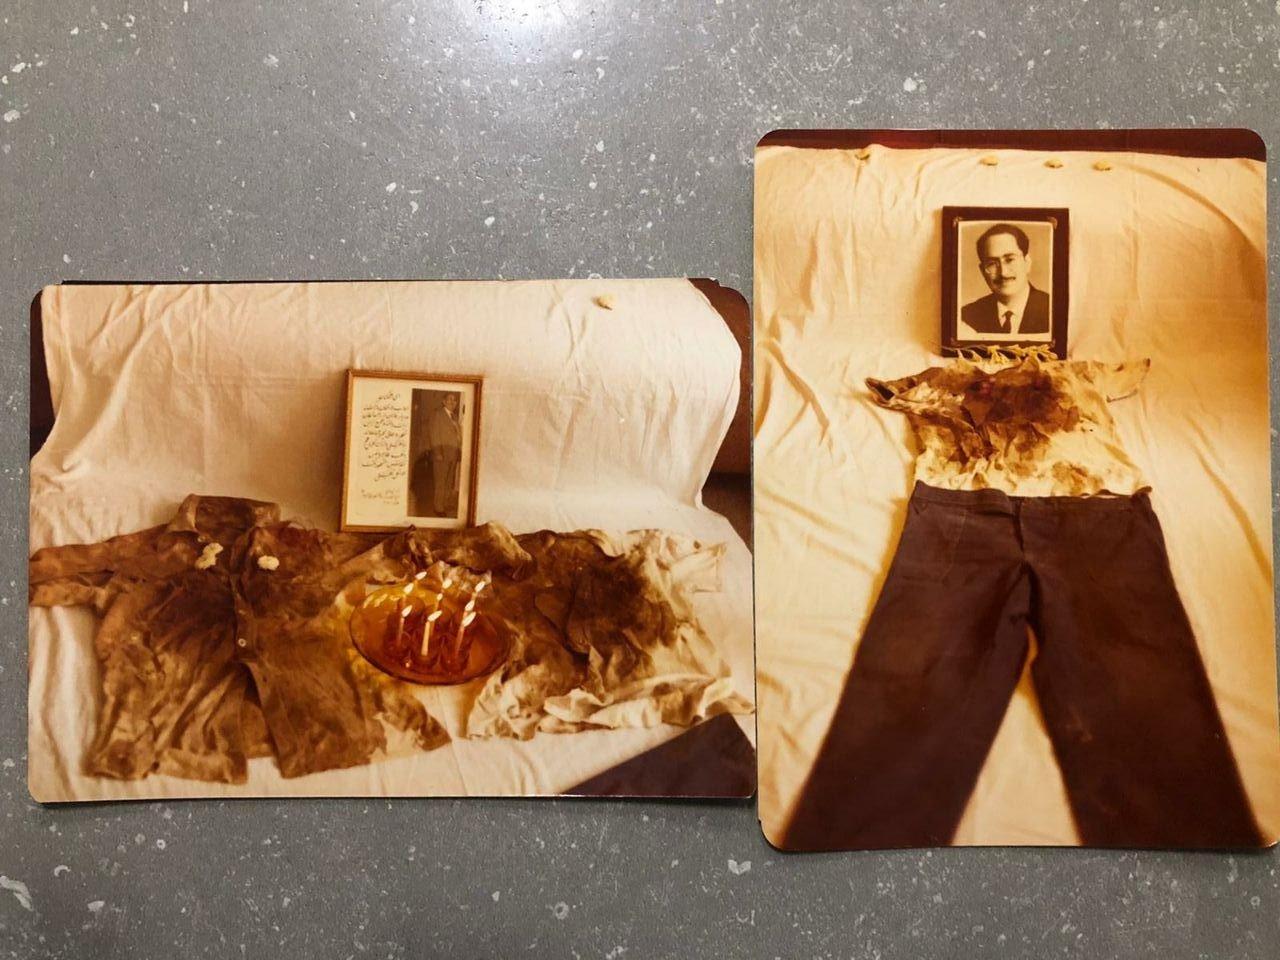 Dr. Dakhili's clothes, pictured after the execution took place